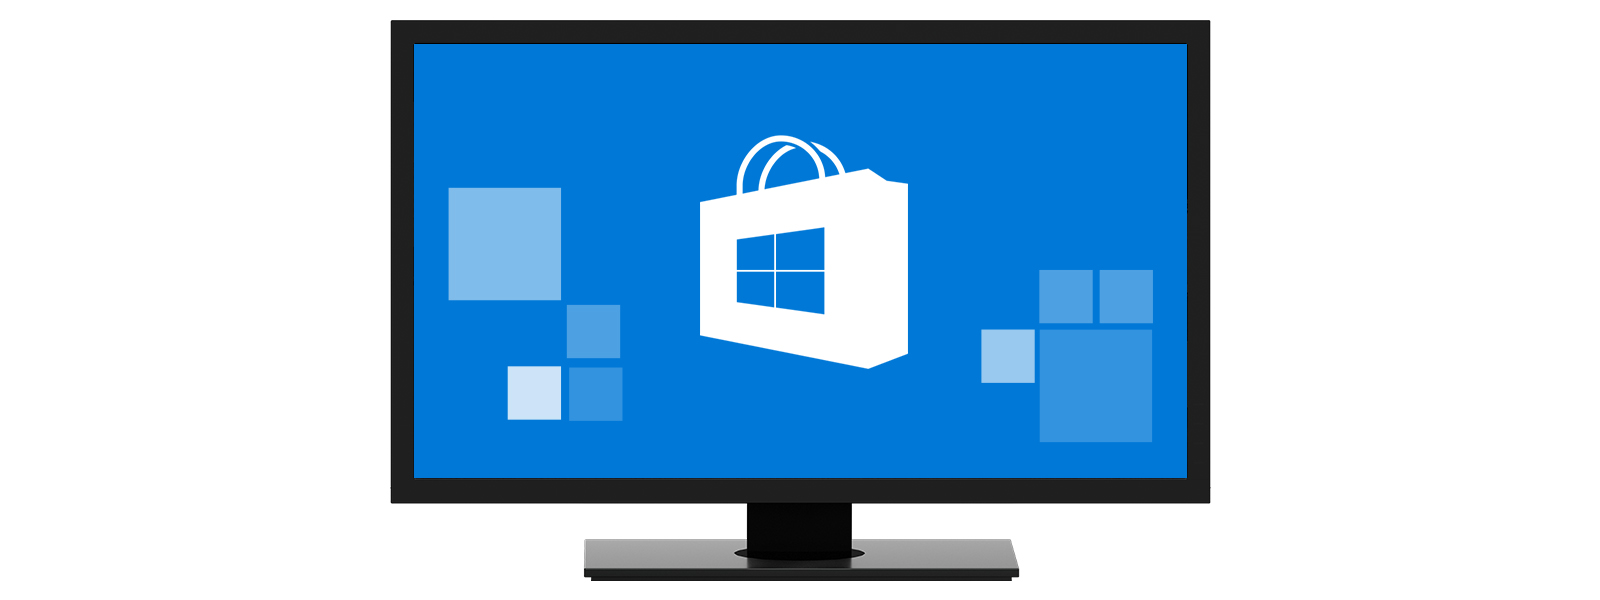 A PC with the Microsoft Store logo on the screen